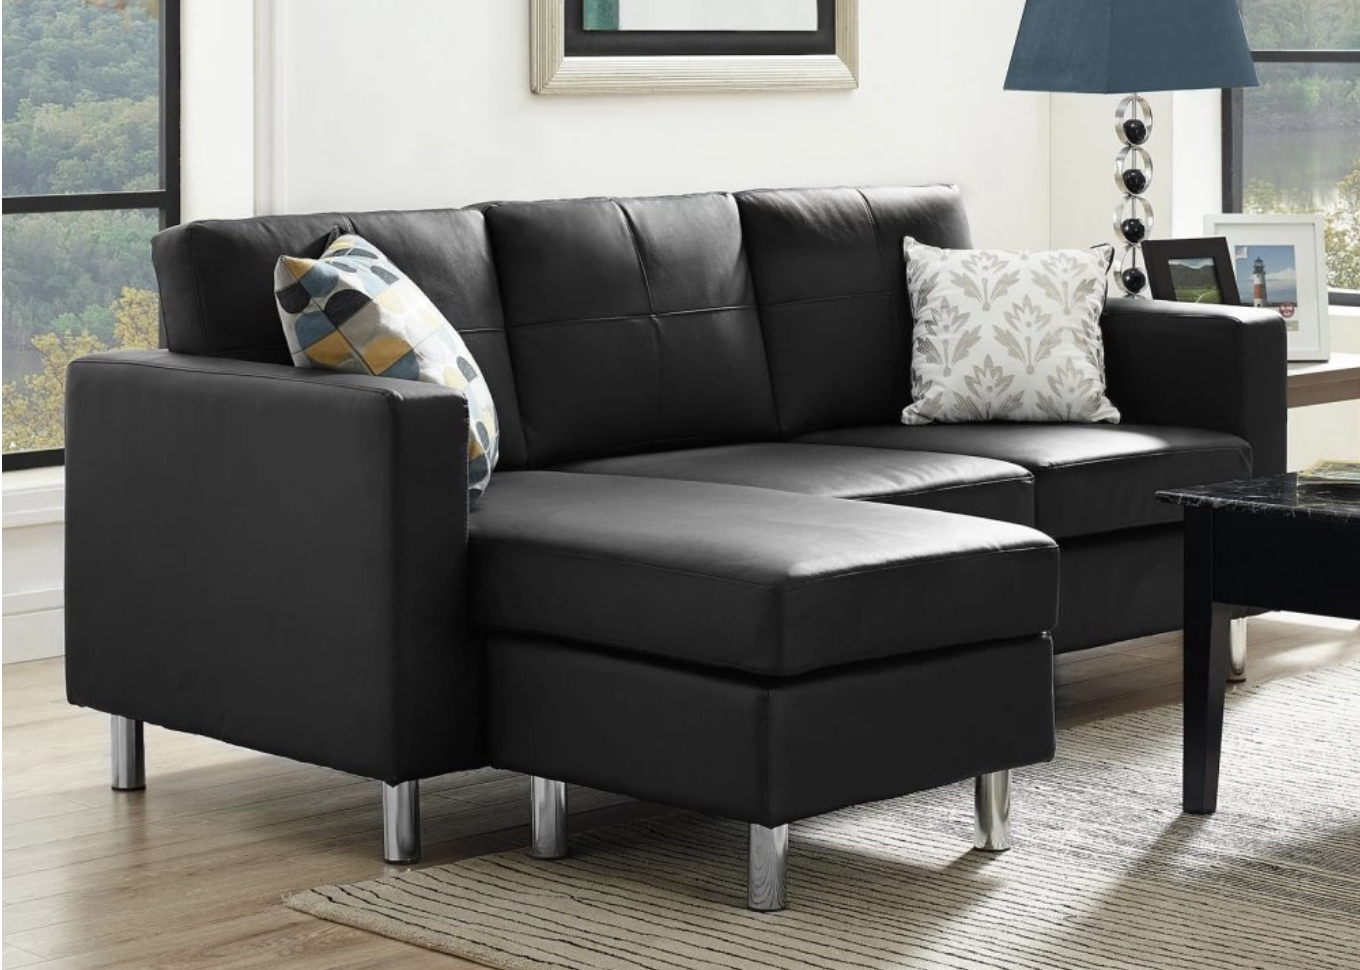 75 Modern Sectional Sofas For Small Spaces (2018) with Canada Sectional Sofas for Small Spaces (Image 1 of 10)